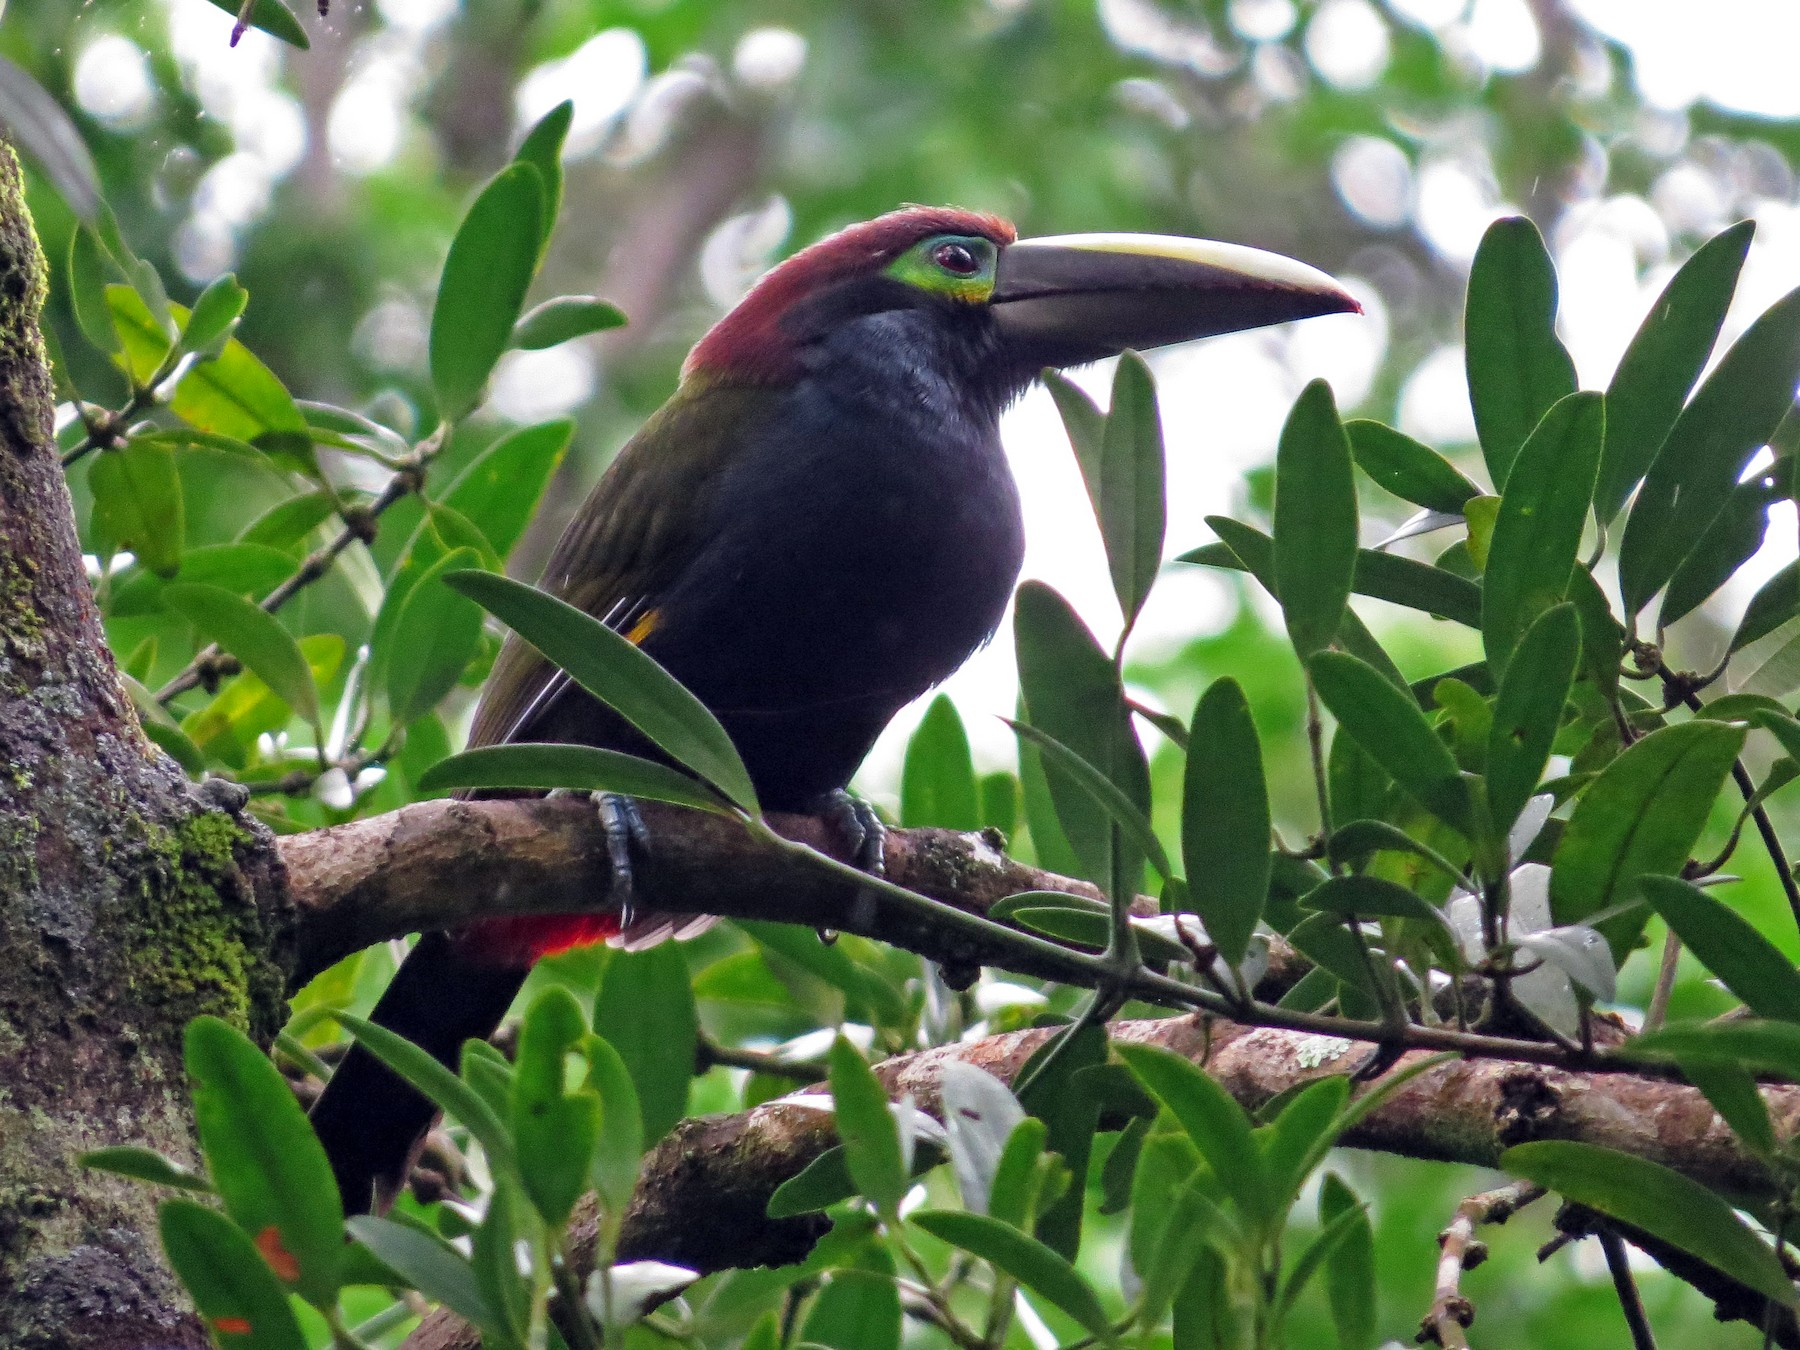 Yellow-eared Toucanet - kenneth reyes